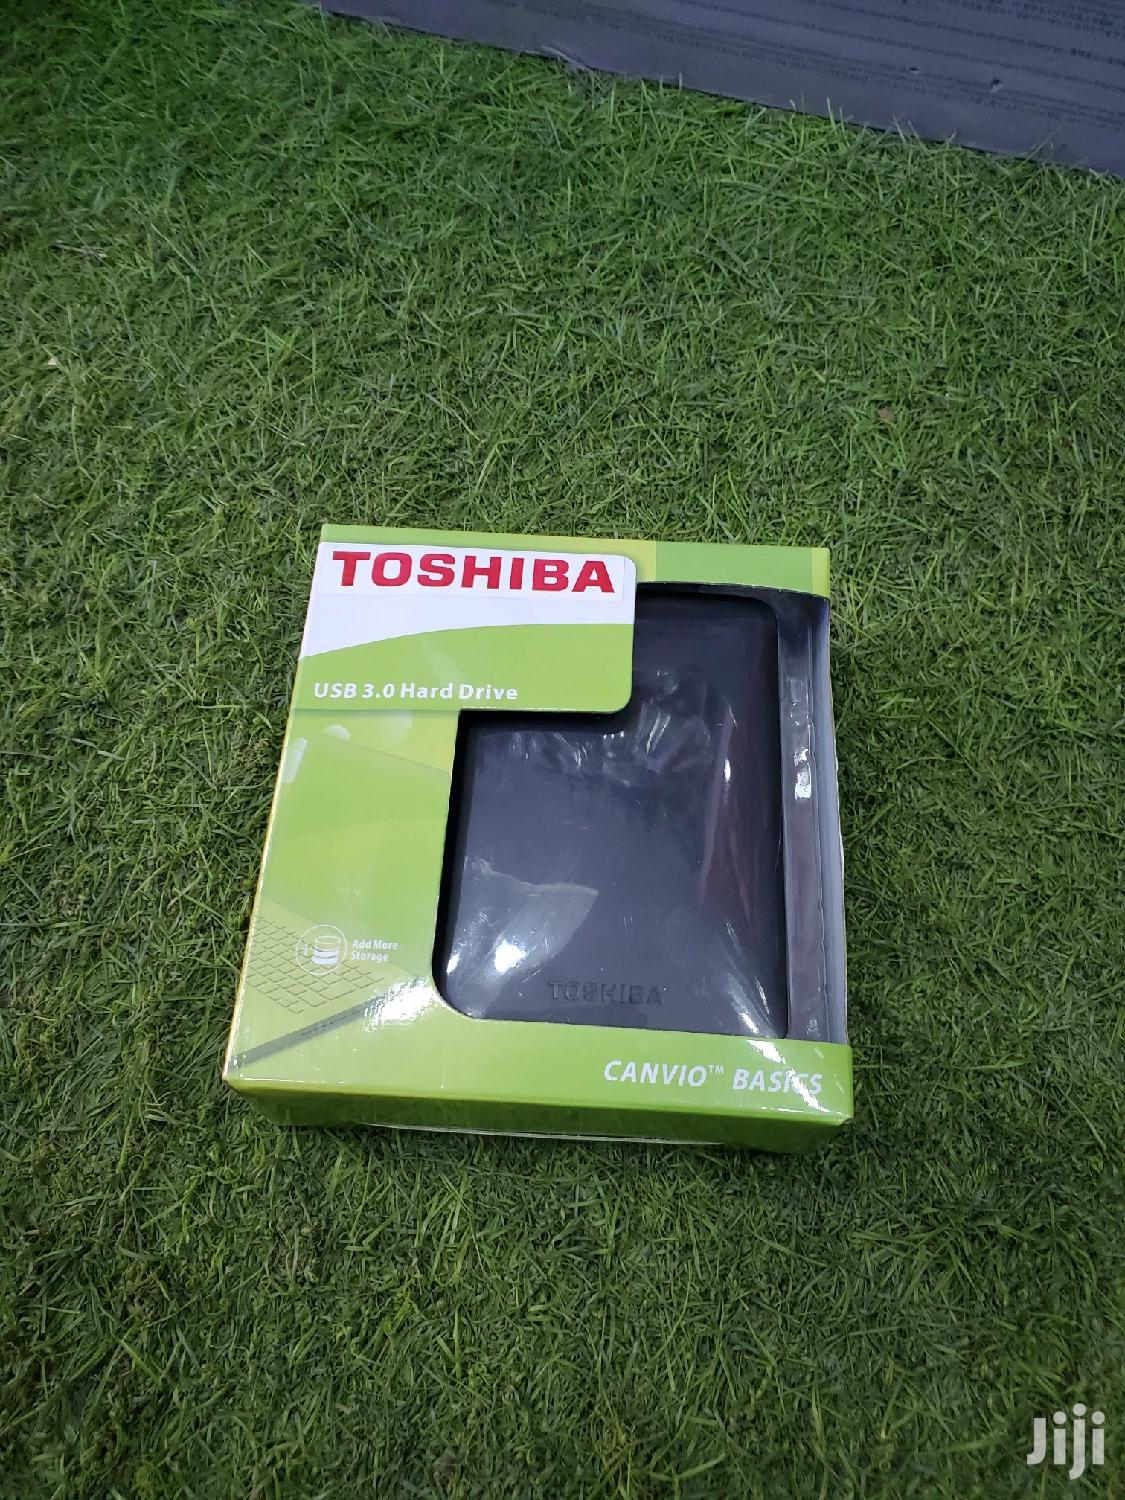 Archive: Toshiba External Hard Drive 500GB